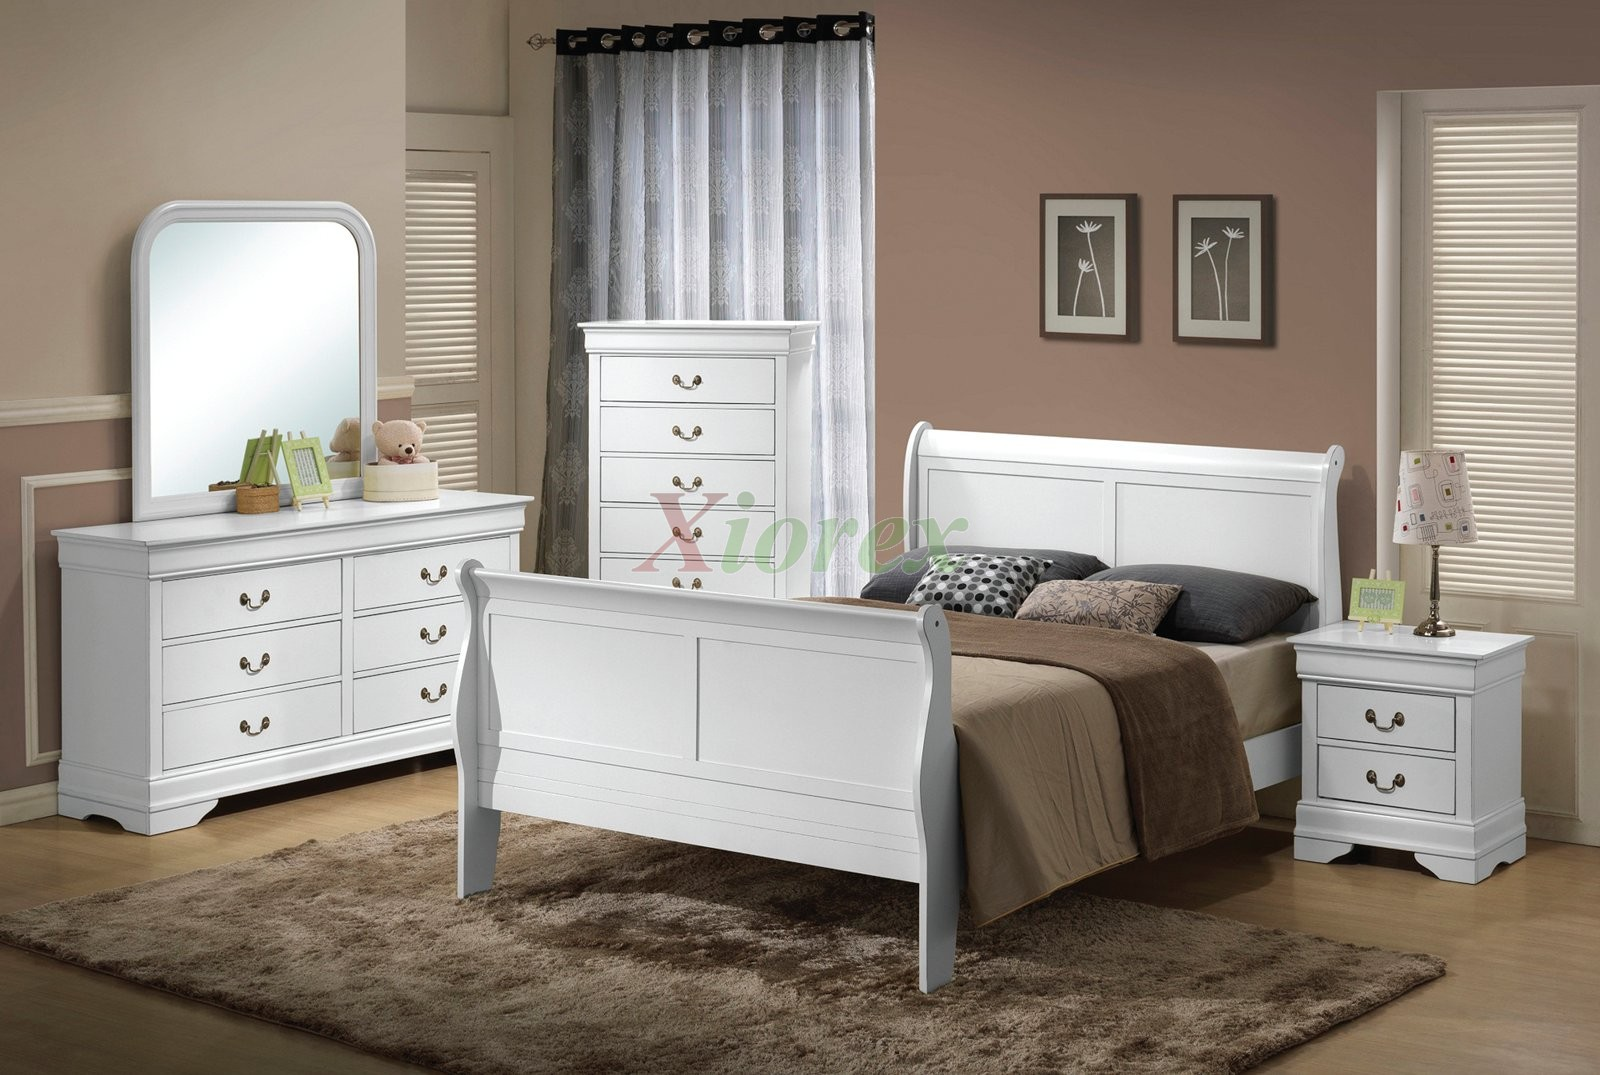 Semi gloss sleigh like bedroom furniture set 170 in cherry for Bedroom ideas with white furniture